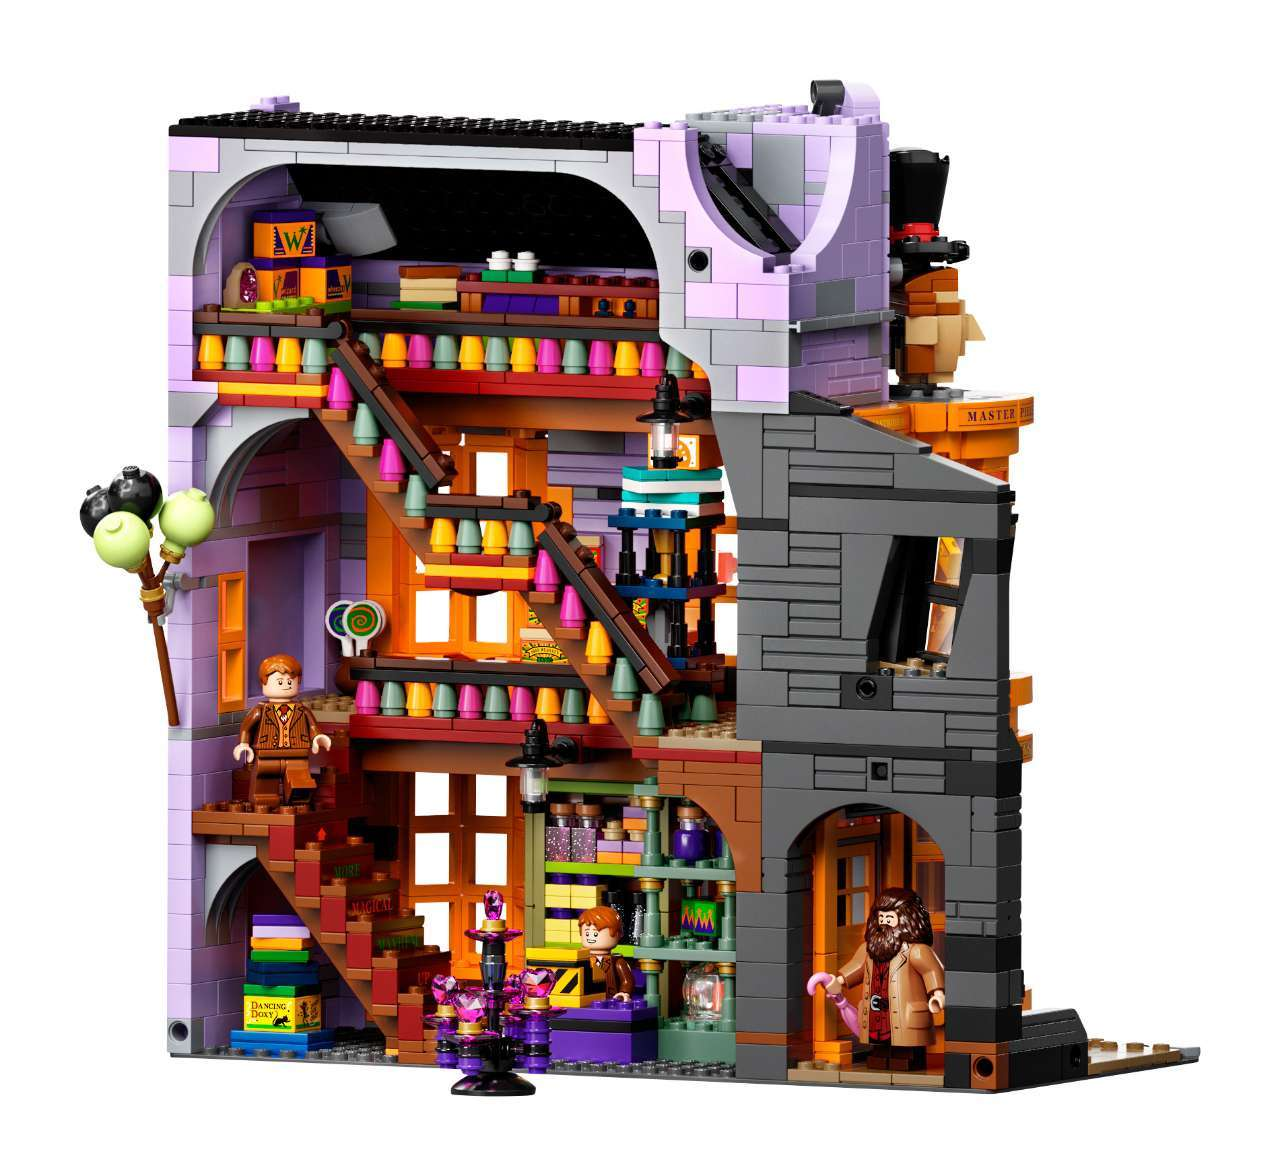 lego-harry-potter-CB-75978-Diagon-Alley-FH61K-12